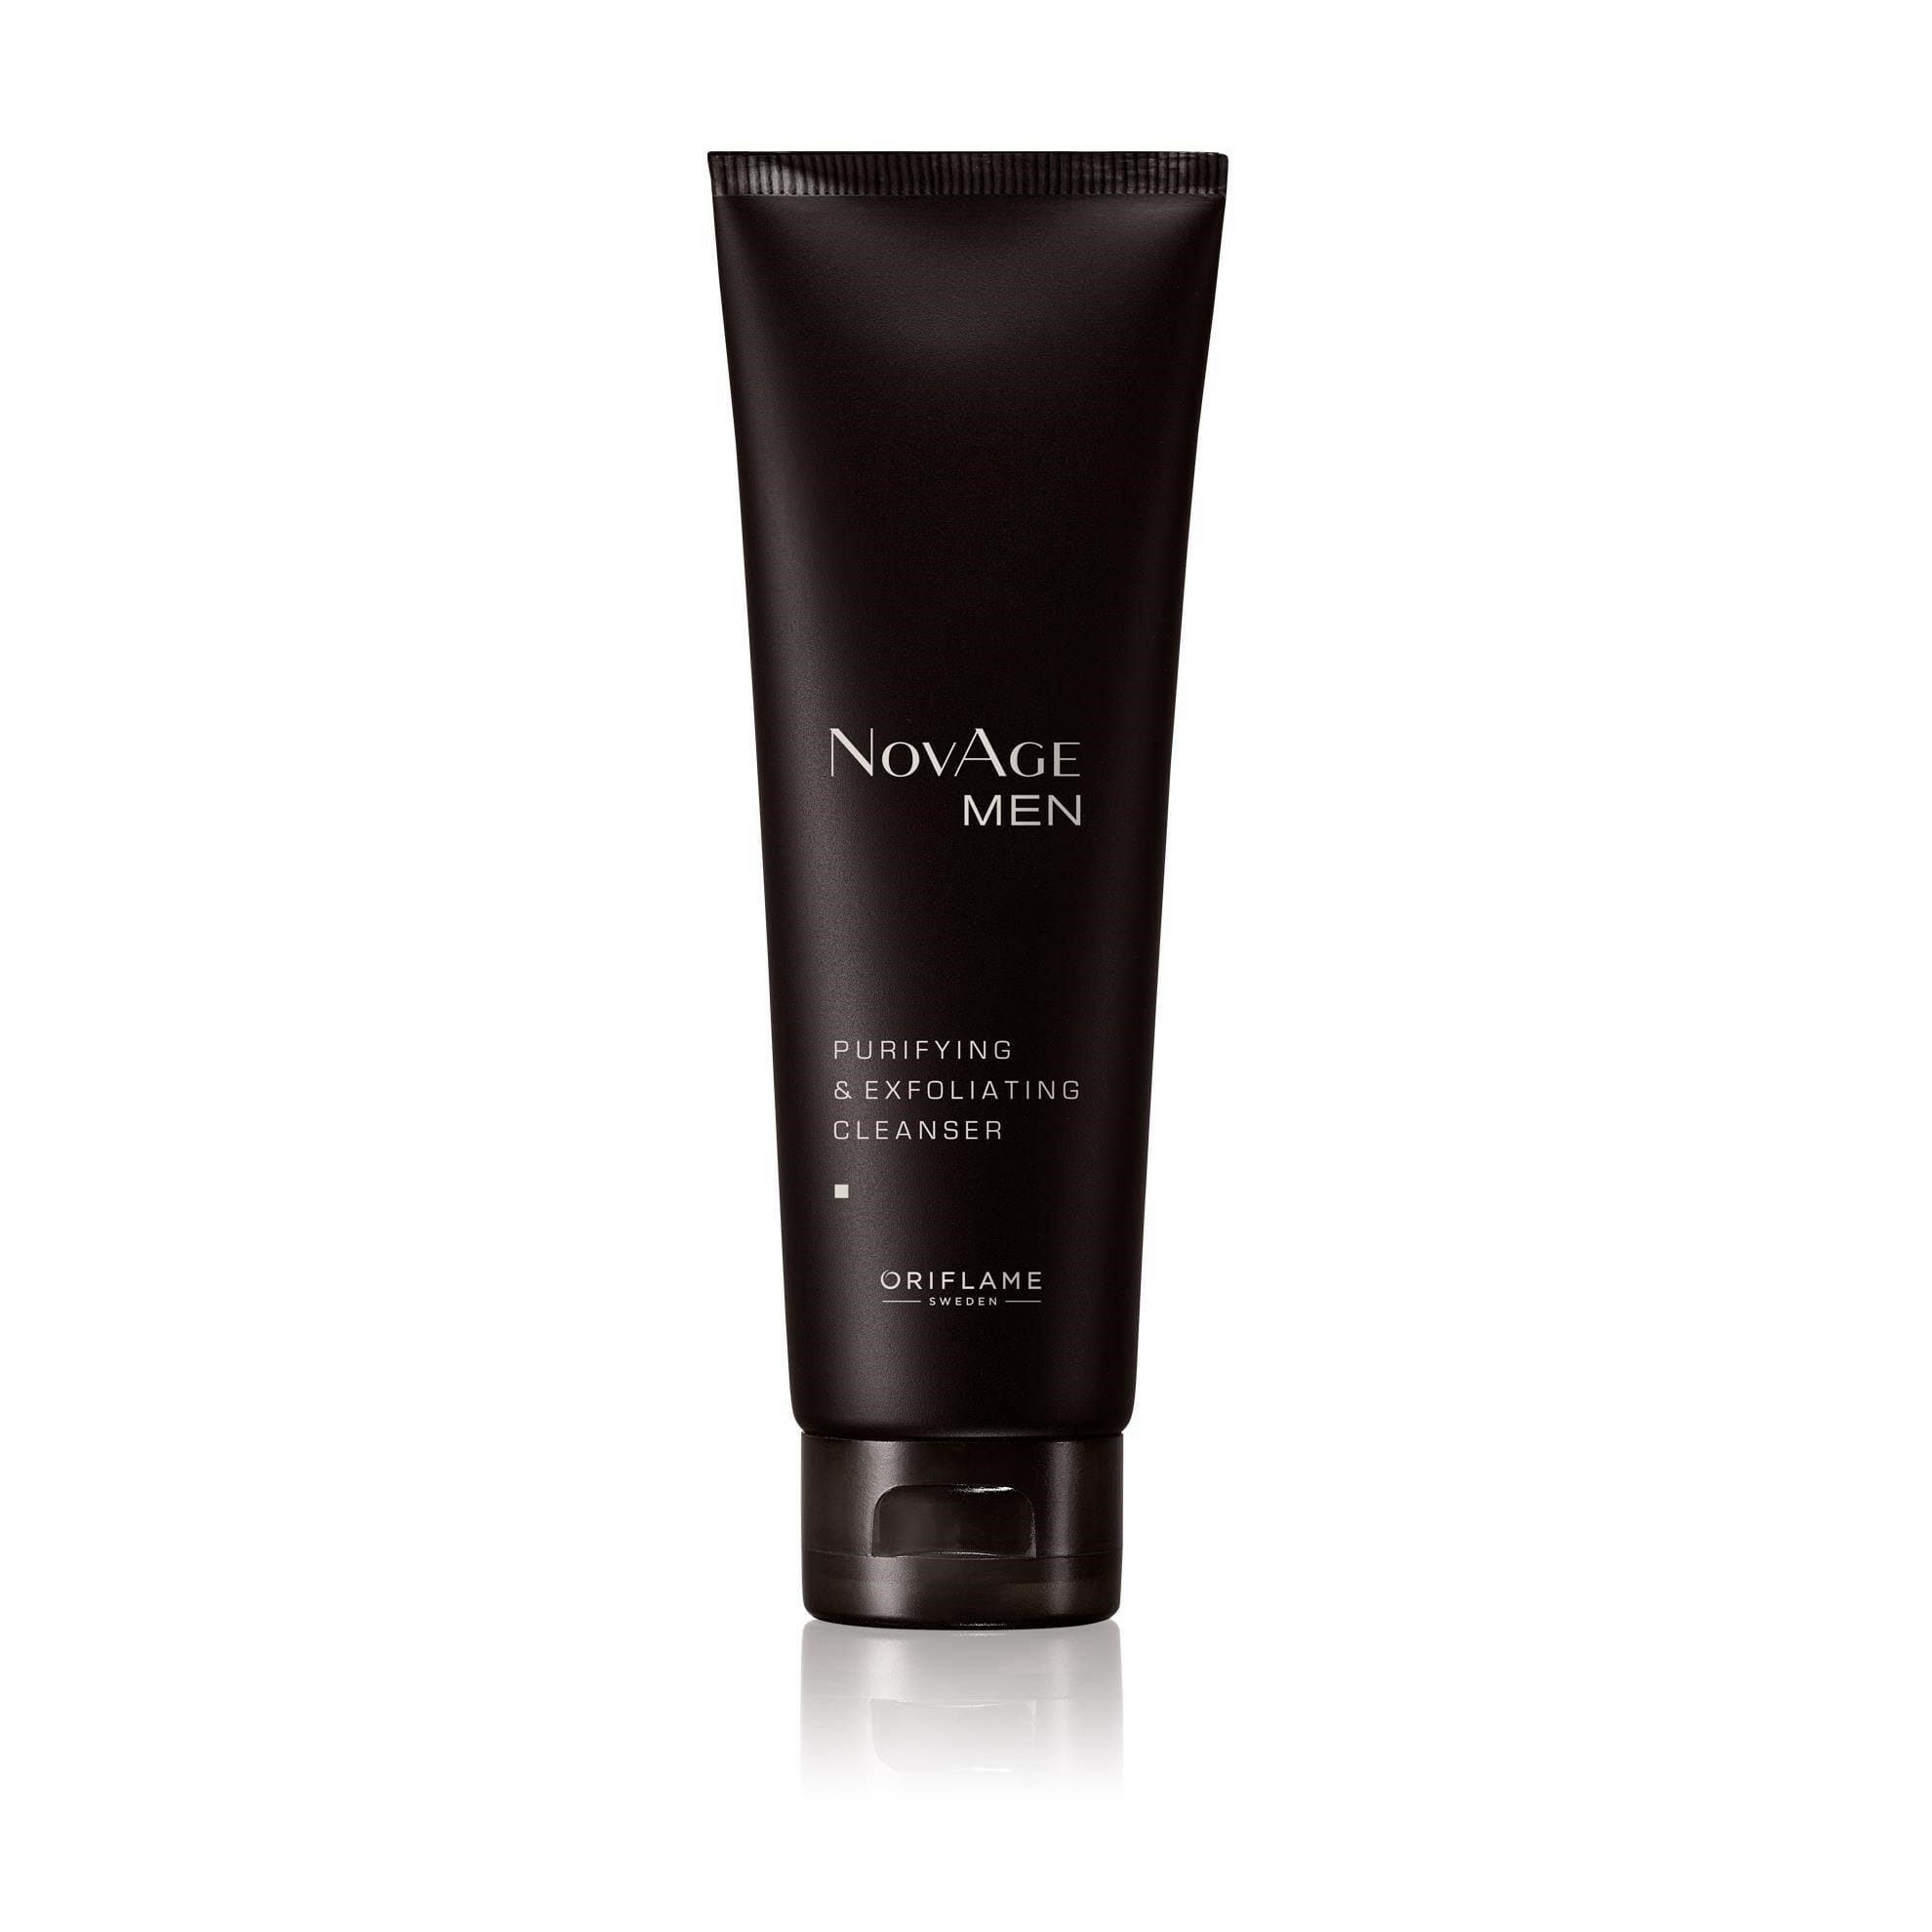 Oriflame Novage Men Purifying & Exfoliating Cleanser 125ml Best Face Wash For Men in Pakistan